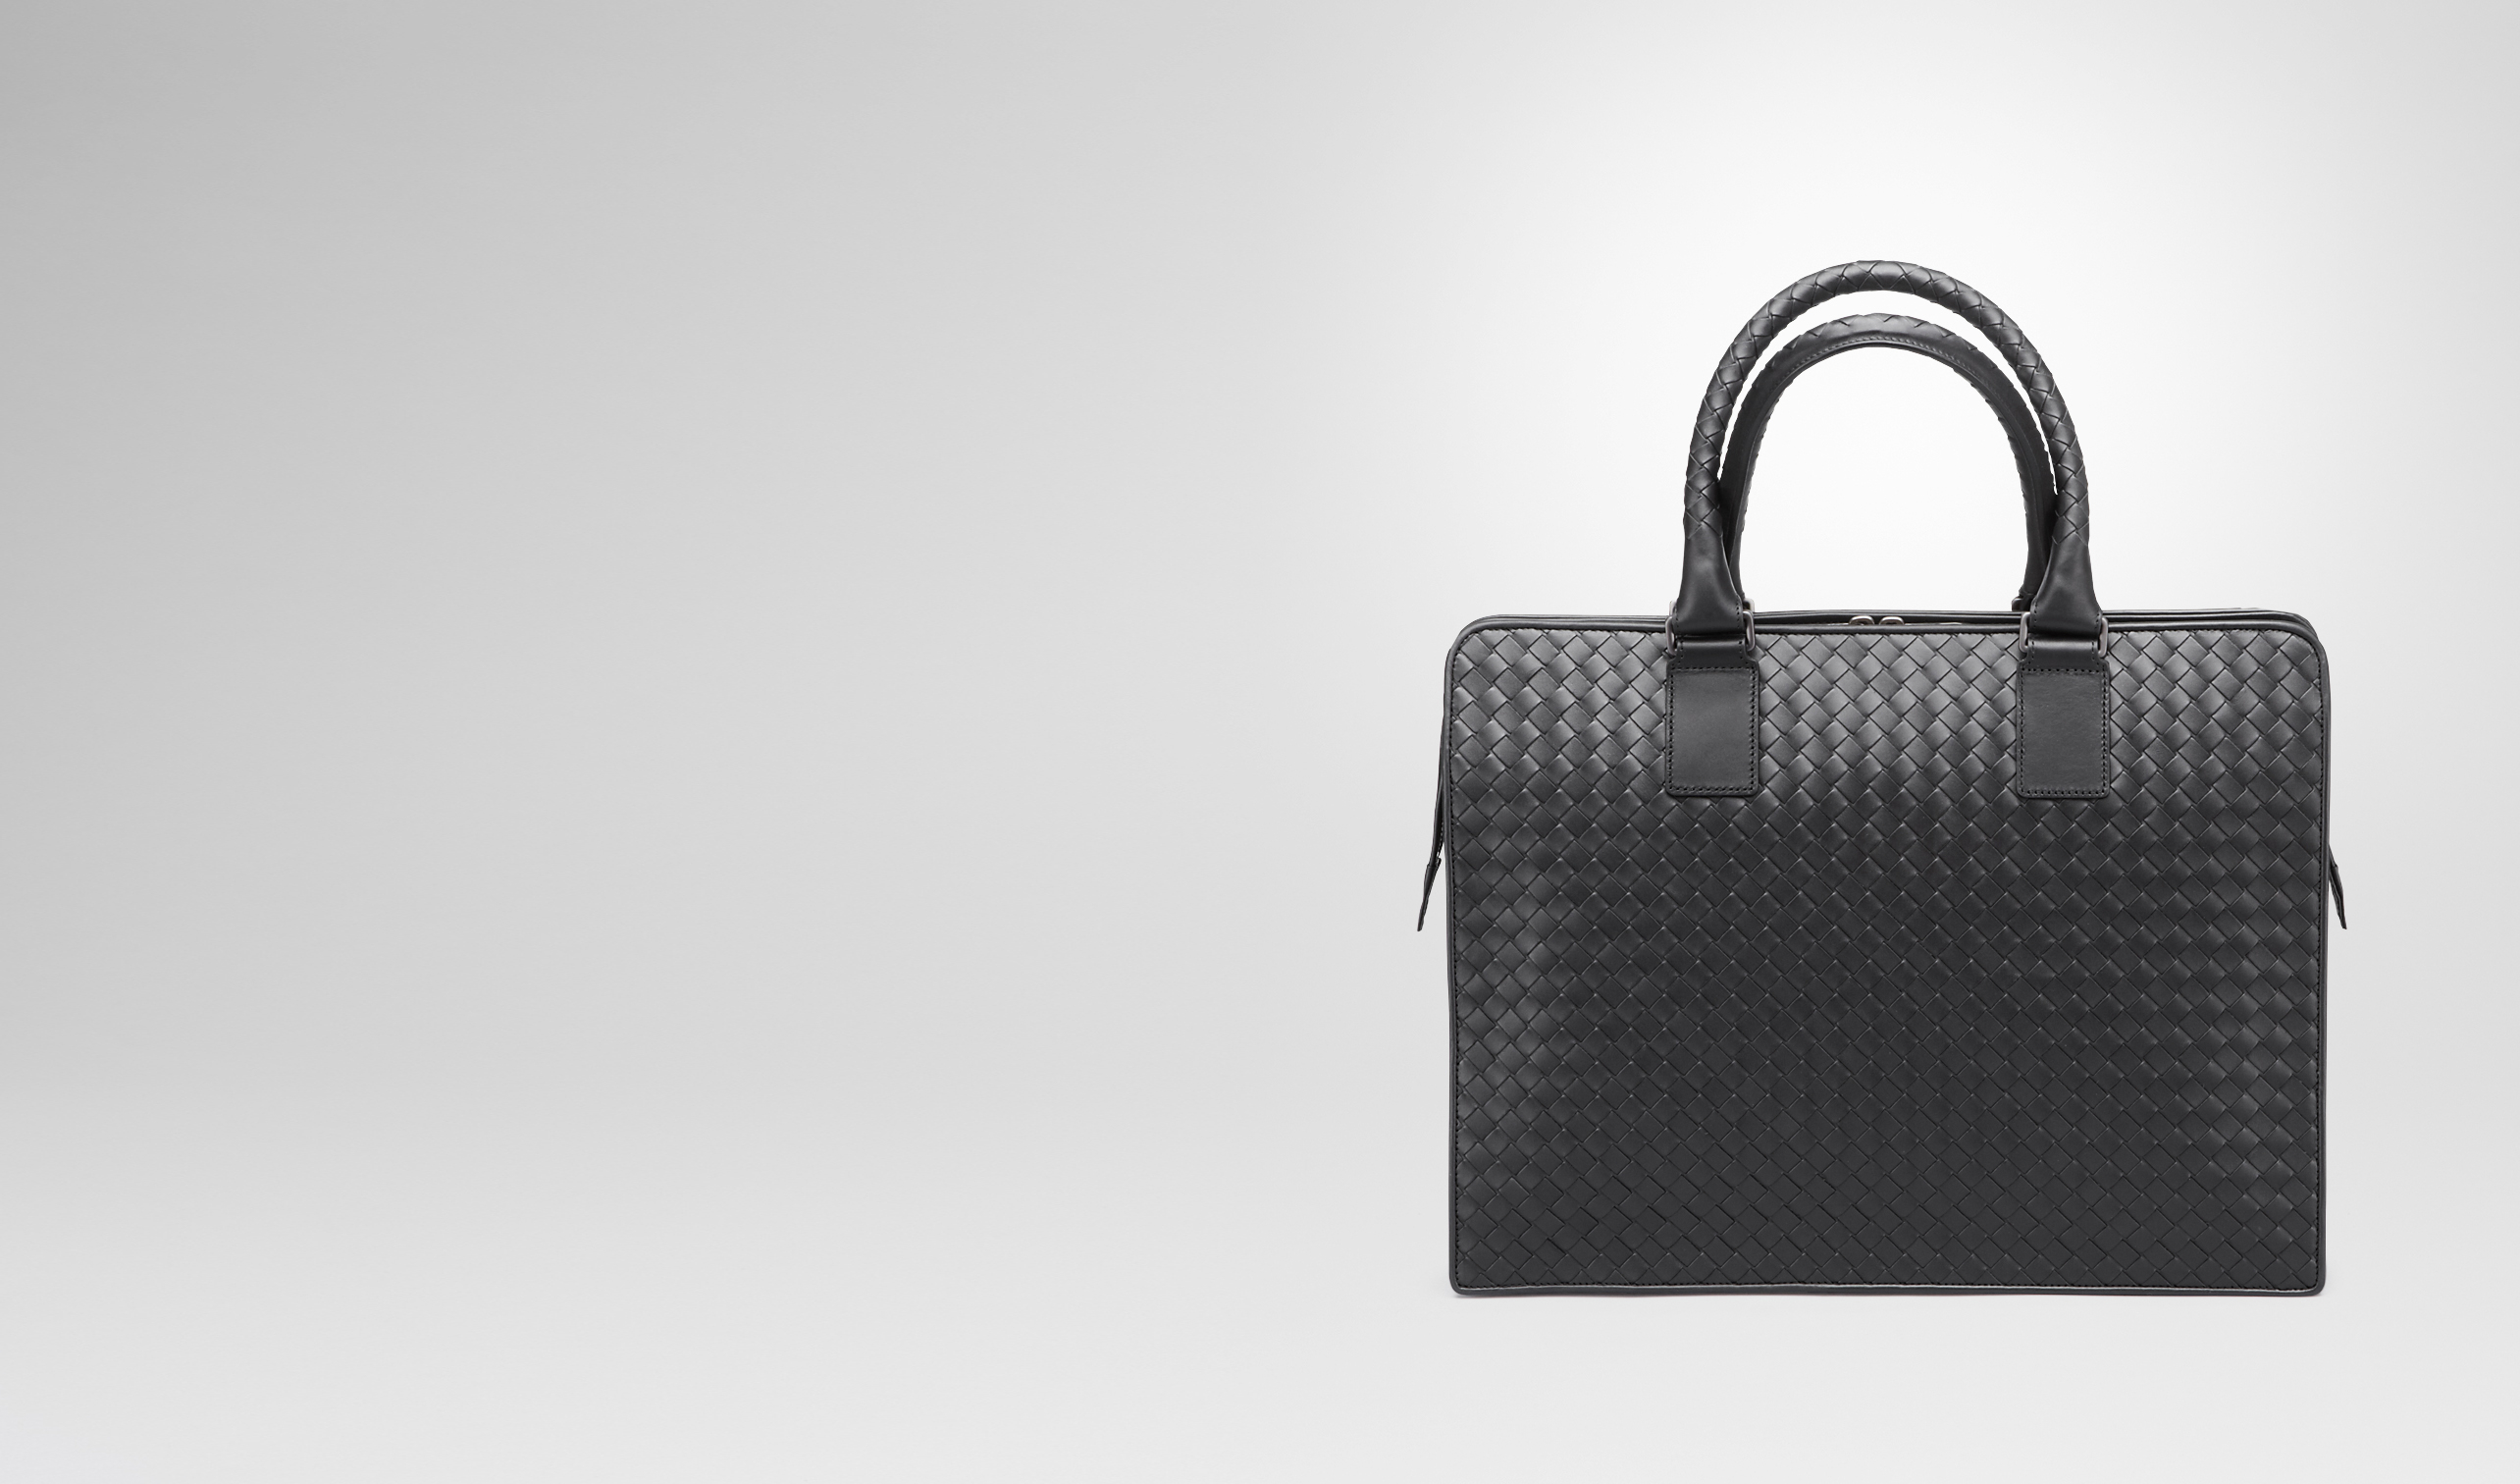 BOTTEGA VENETA Business Tasche U AKTENTASCHE AUS INTRECCIATO VN IN NERO pl